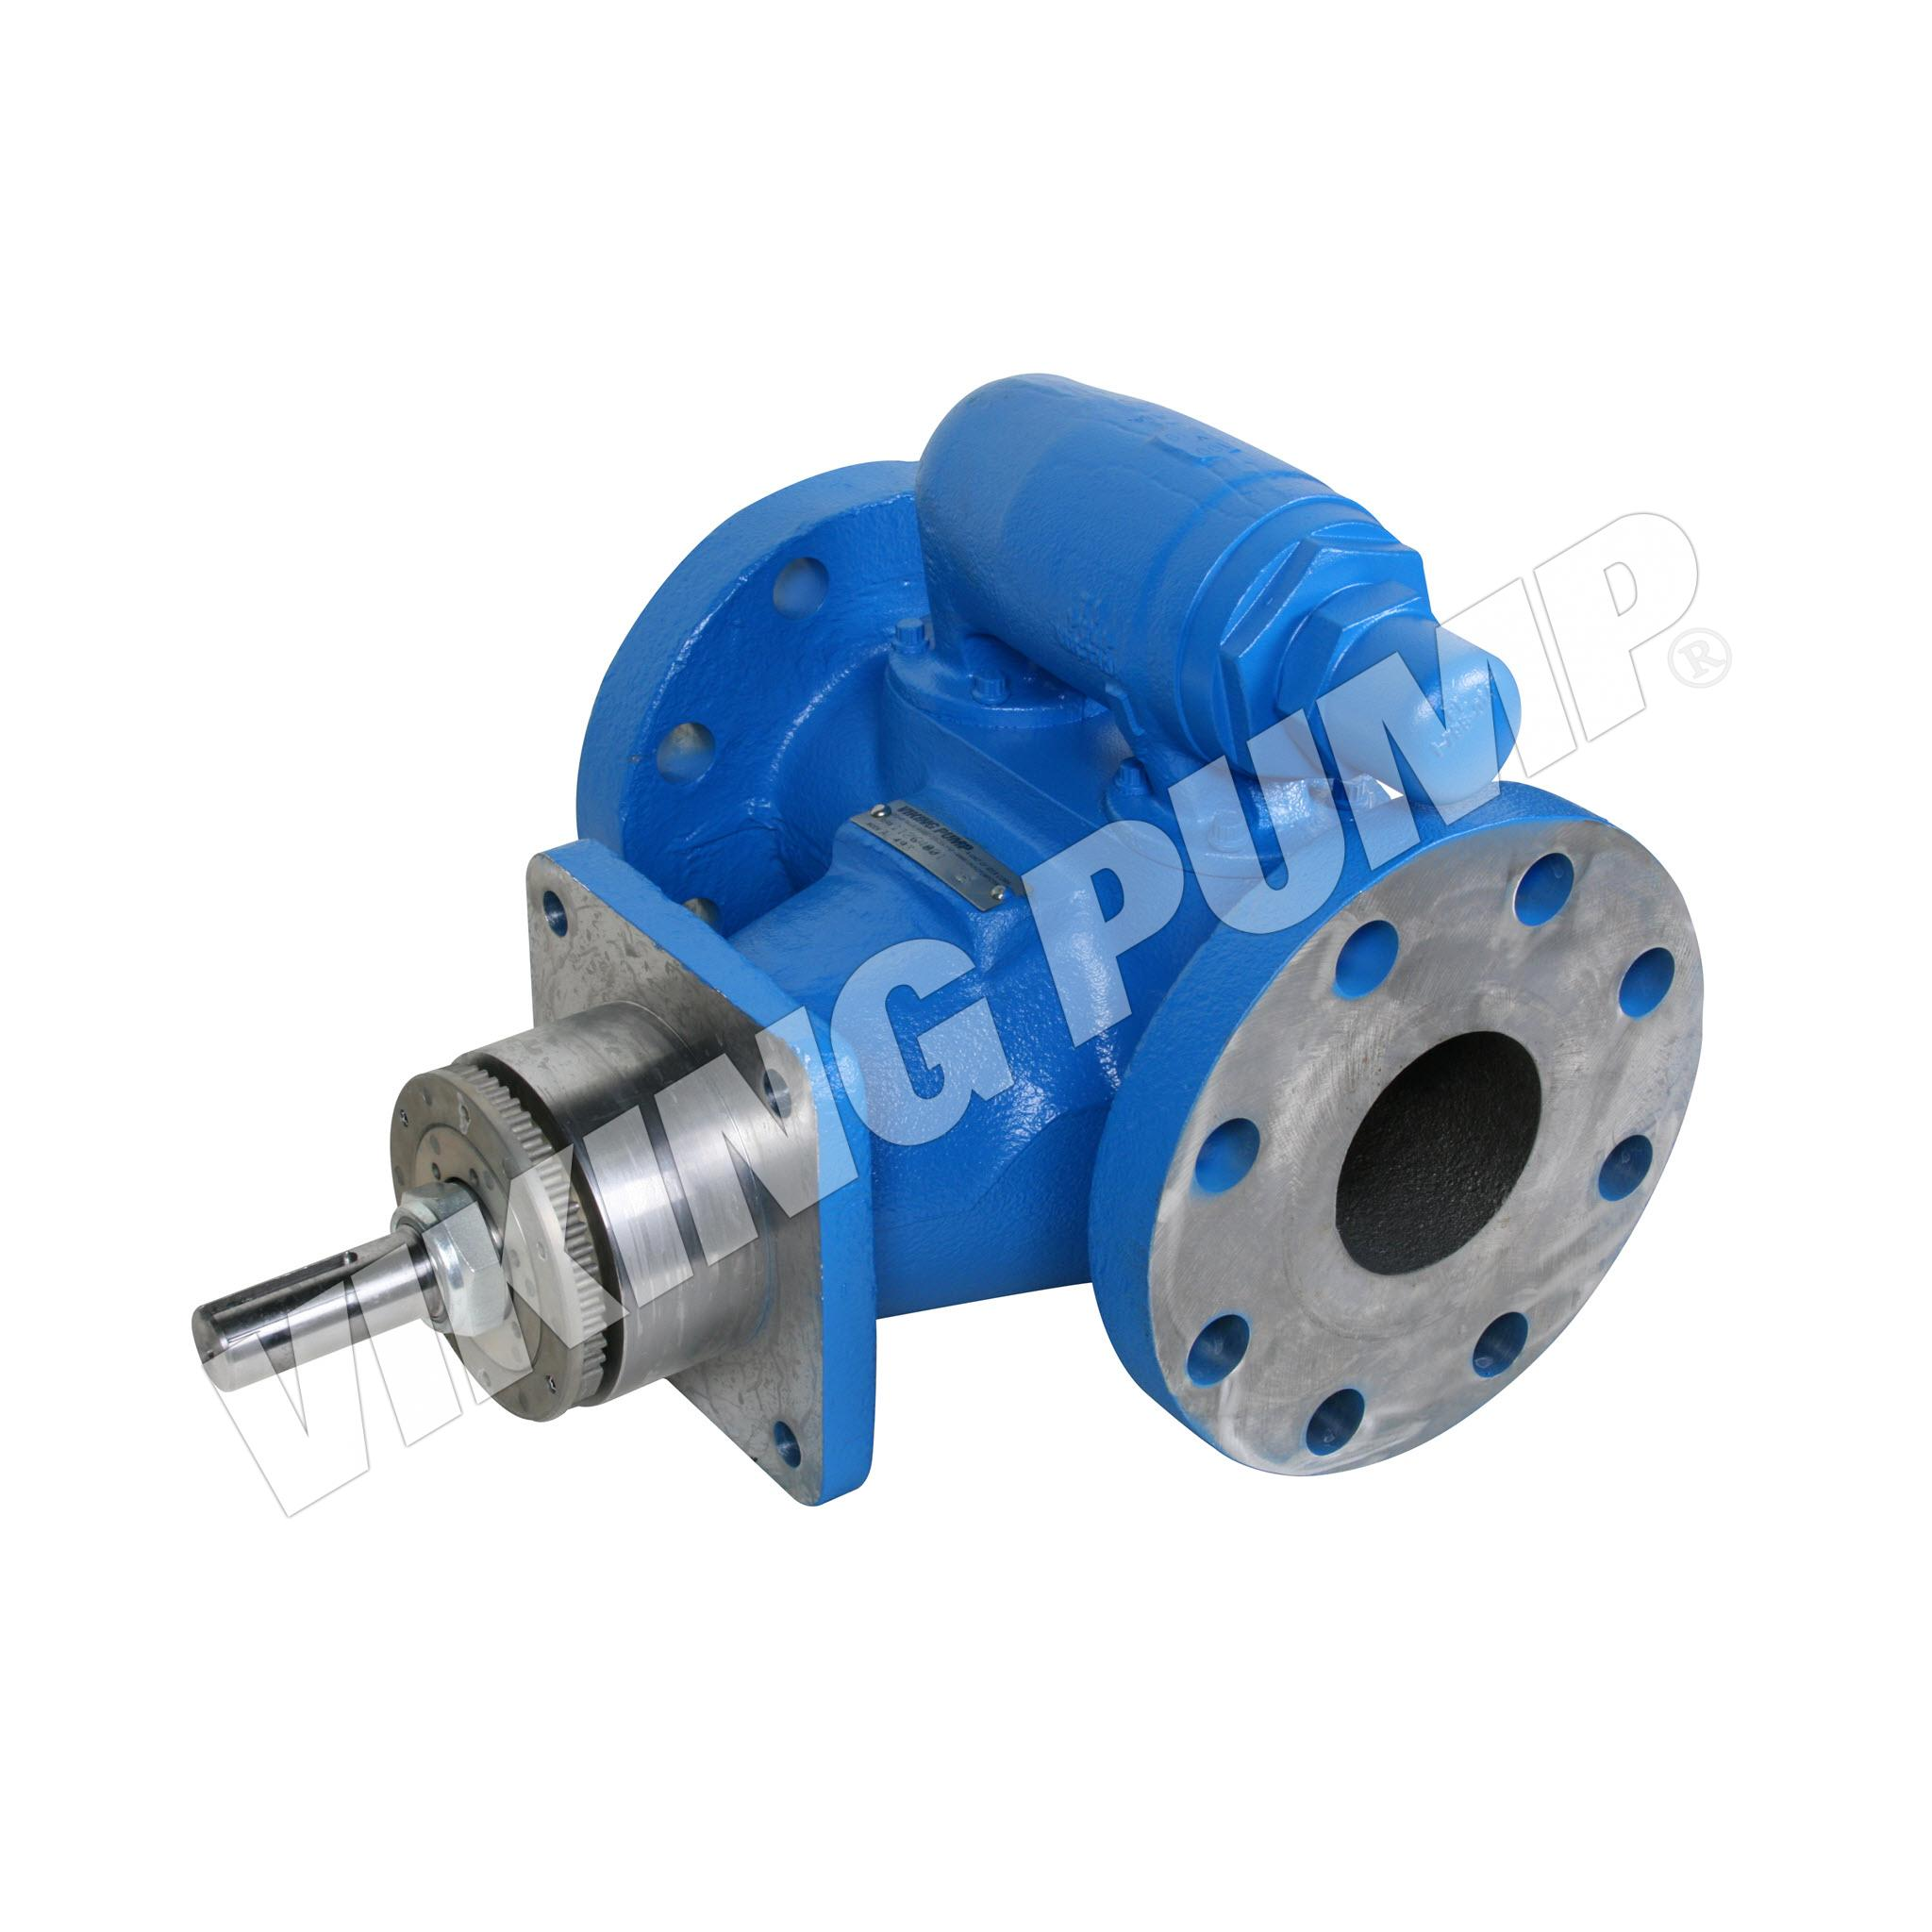 Model AL493, Unmounted, Mechanical Seal, Relief Valve Pump